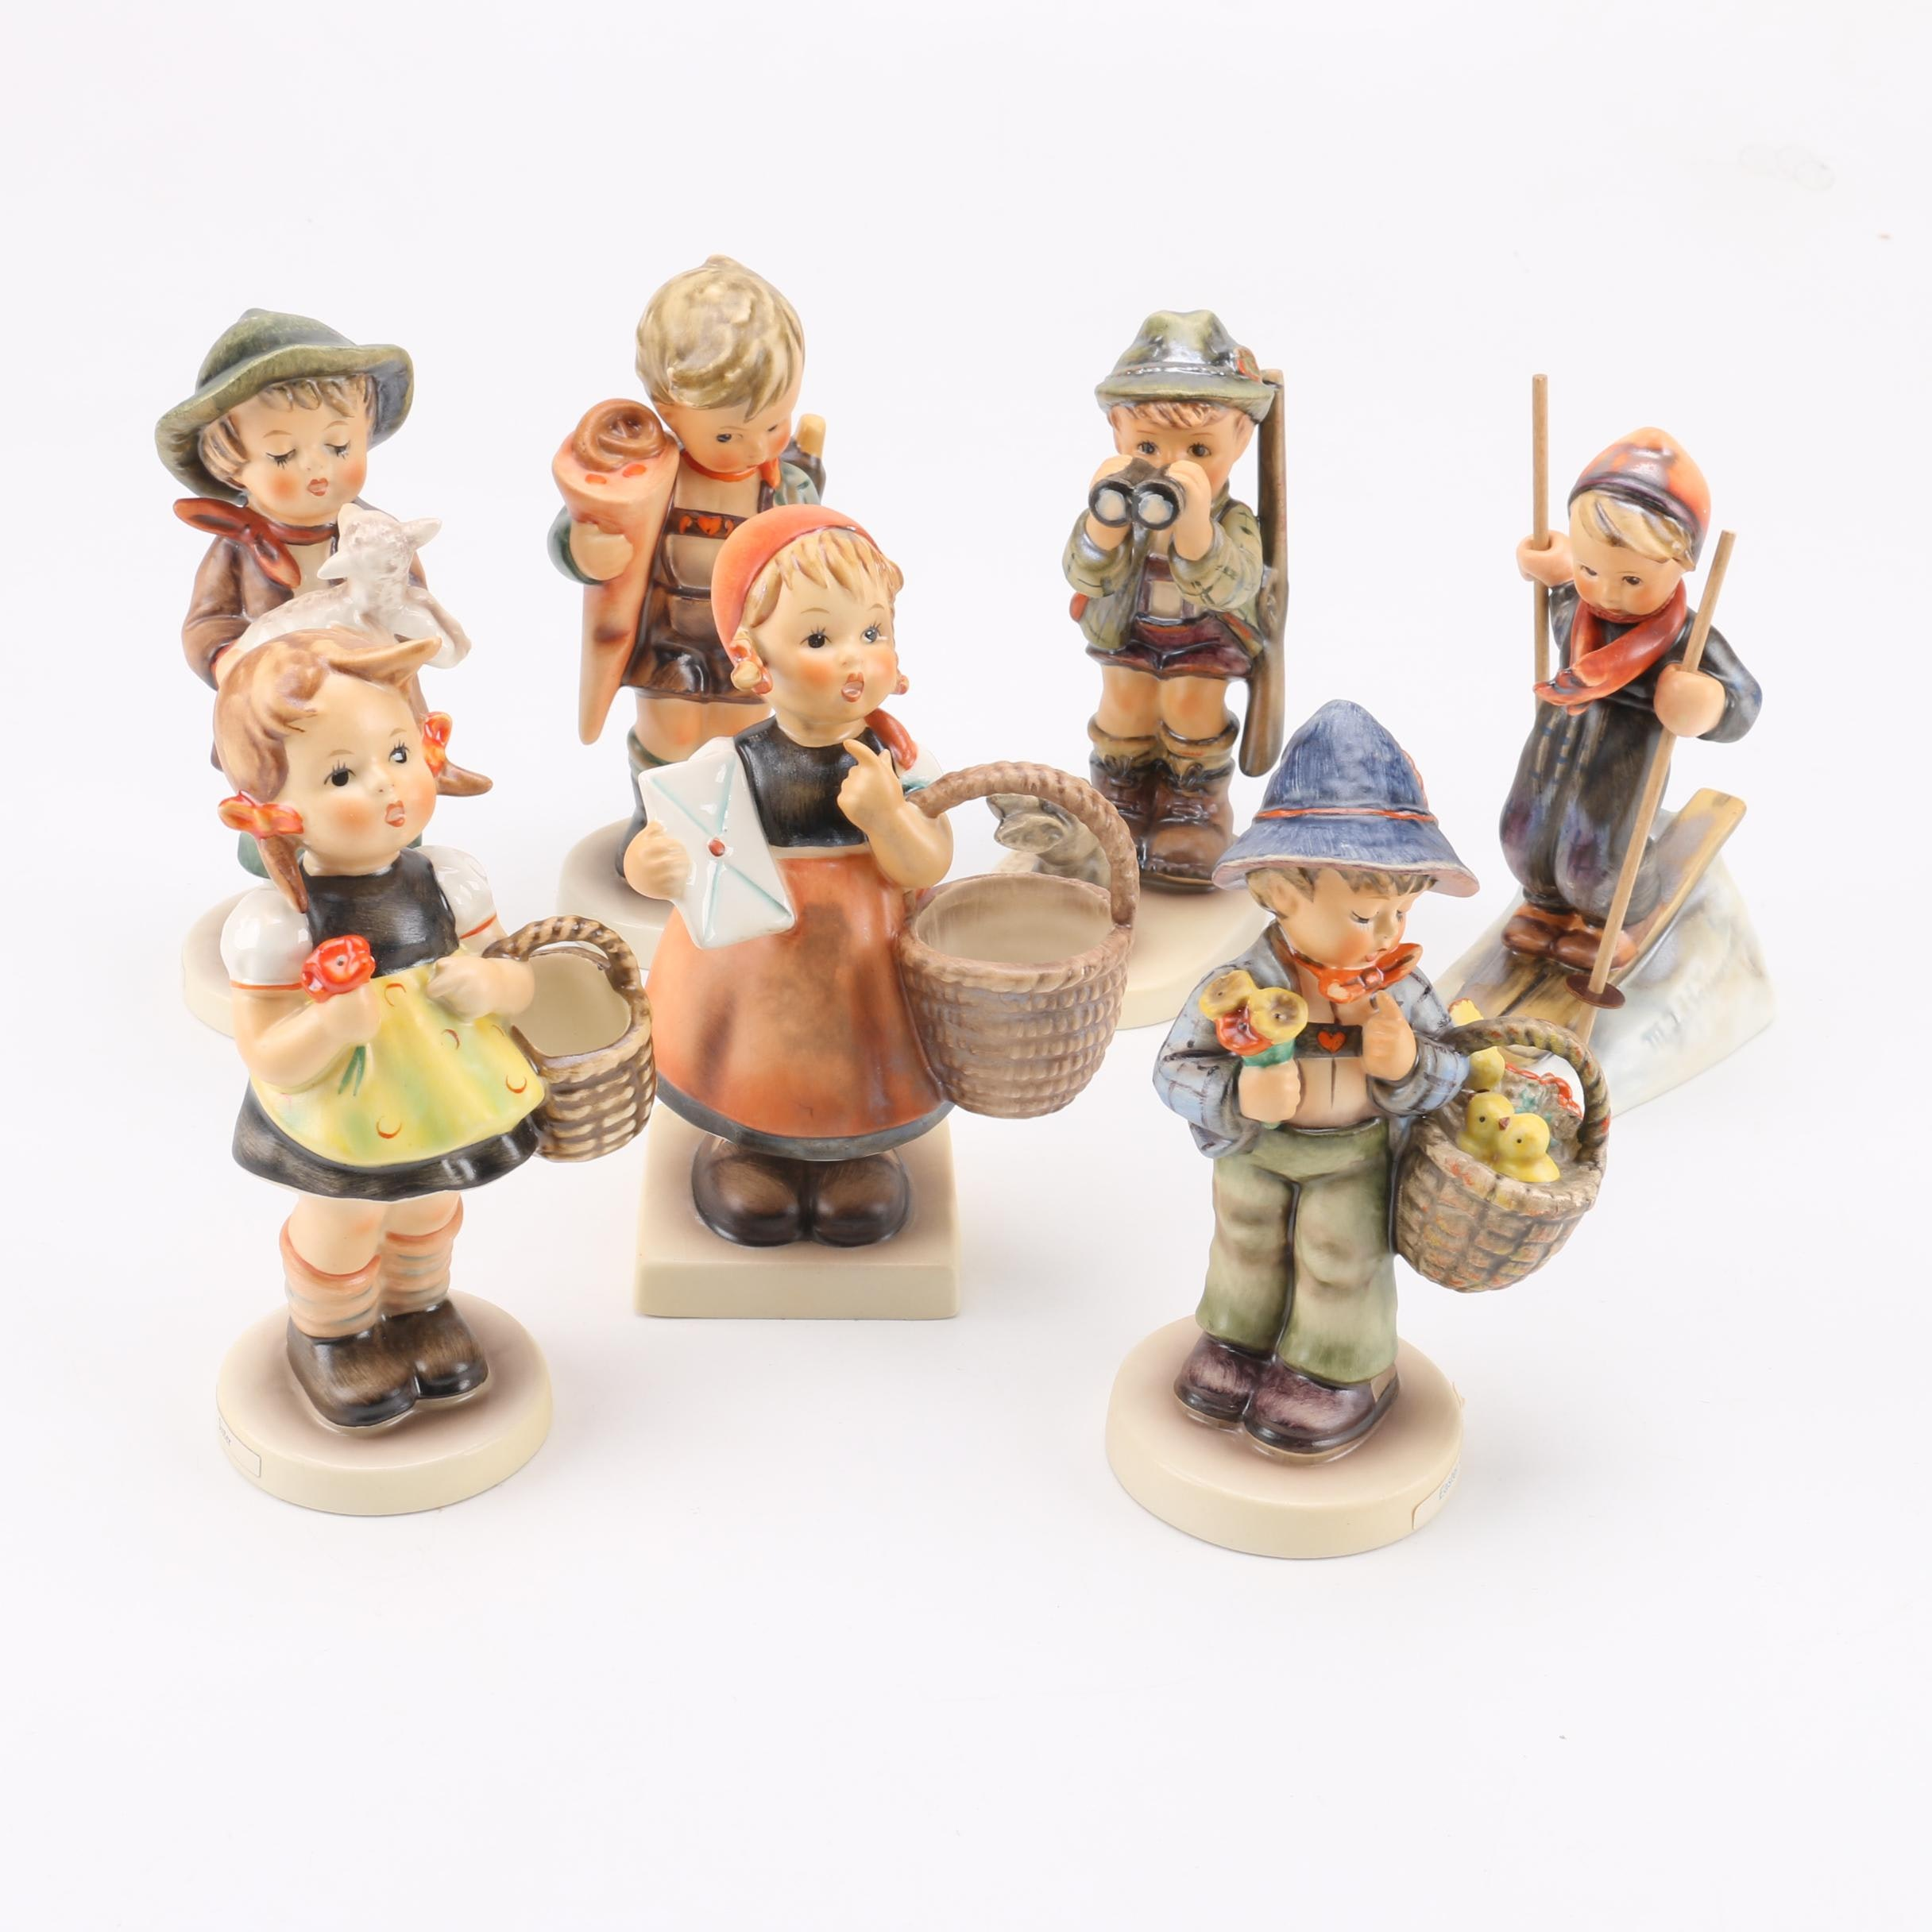 "Vintage Hummel Figurines including ""Sister"", ""Little Scholar"", and ""Skier"""